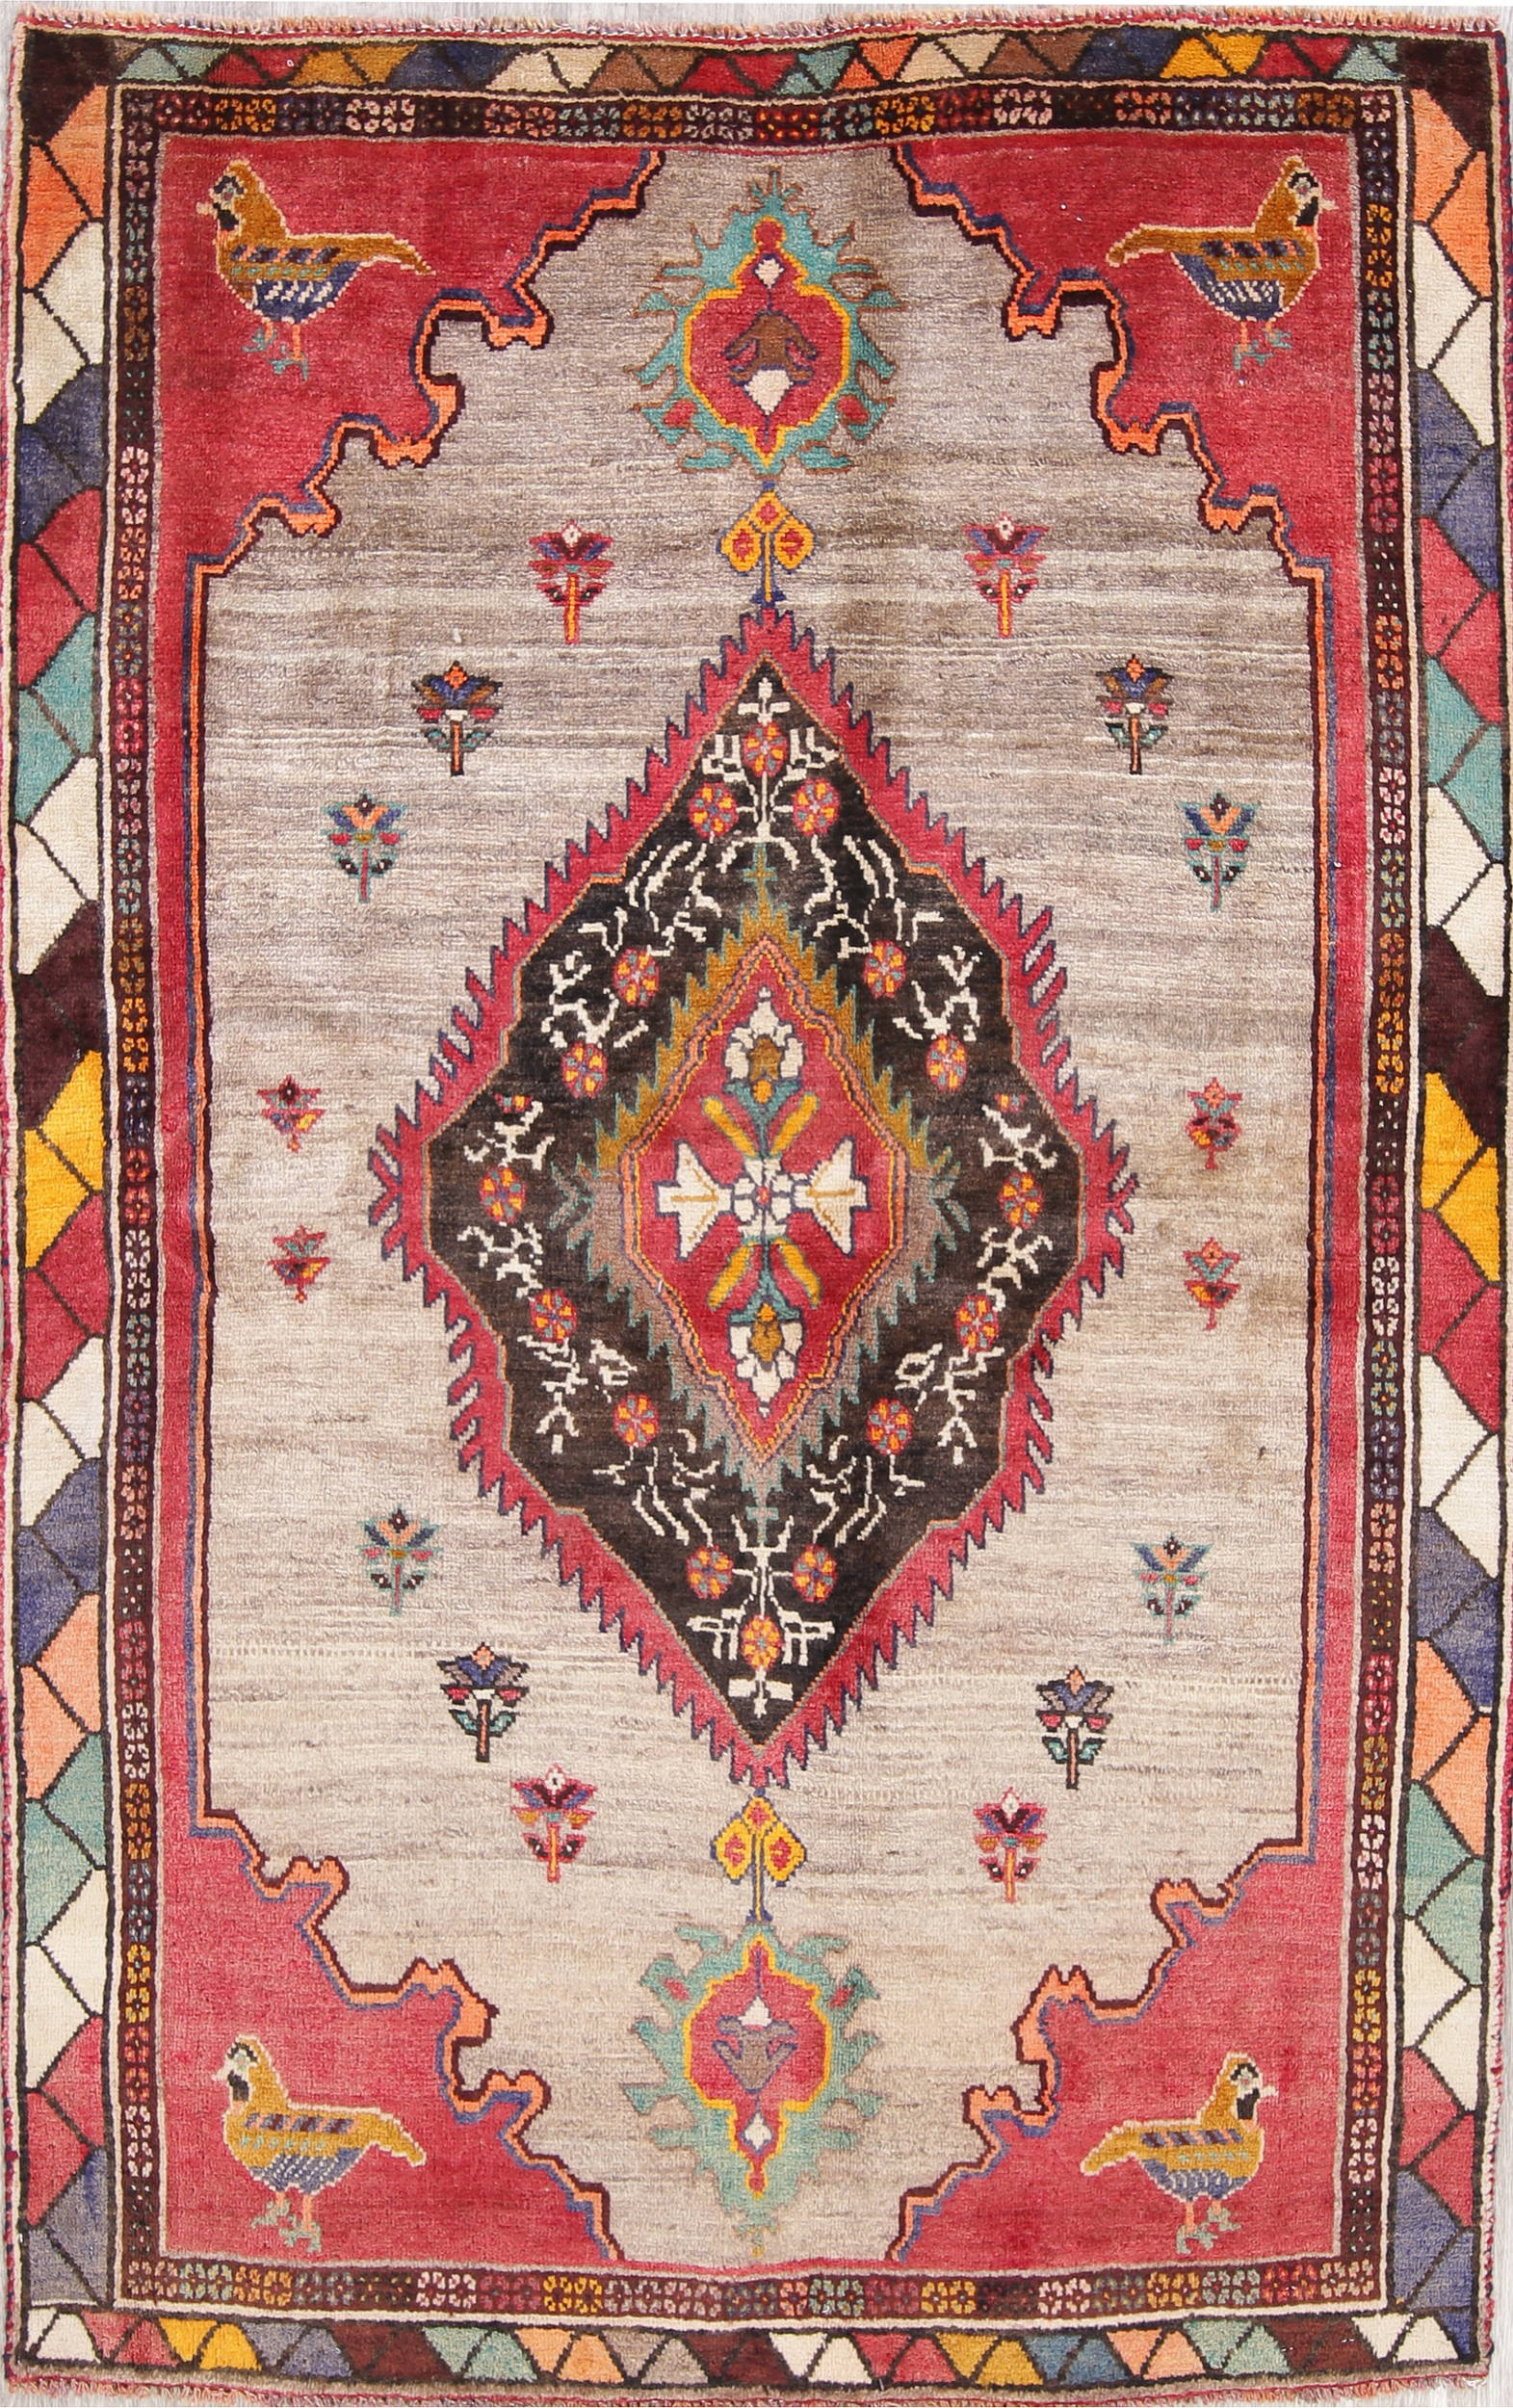 One of a Kind Tribal Gabbeh Qashqai Persian Hand-Knotted 4x6 Wool Area Rug